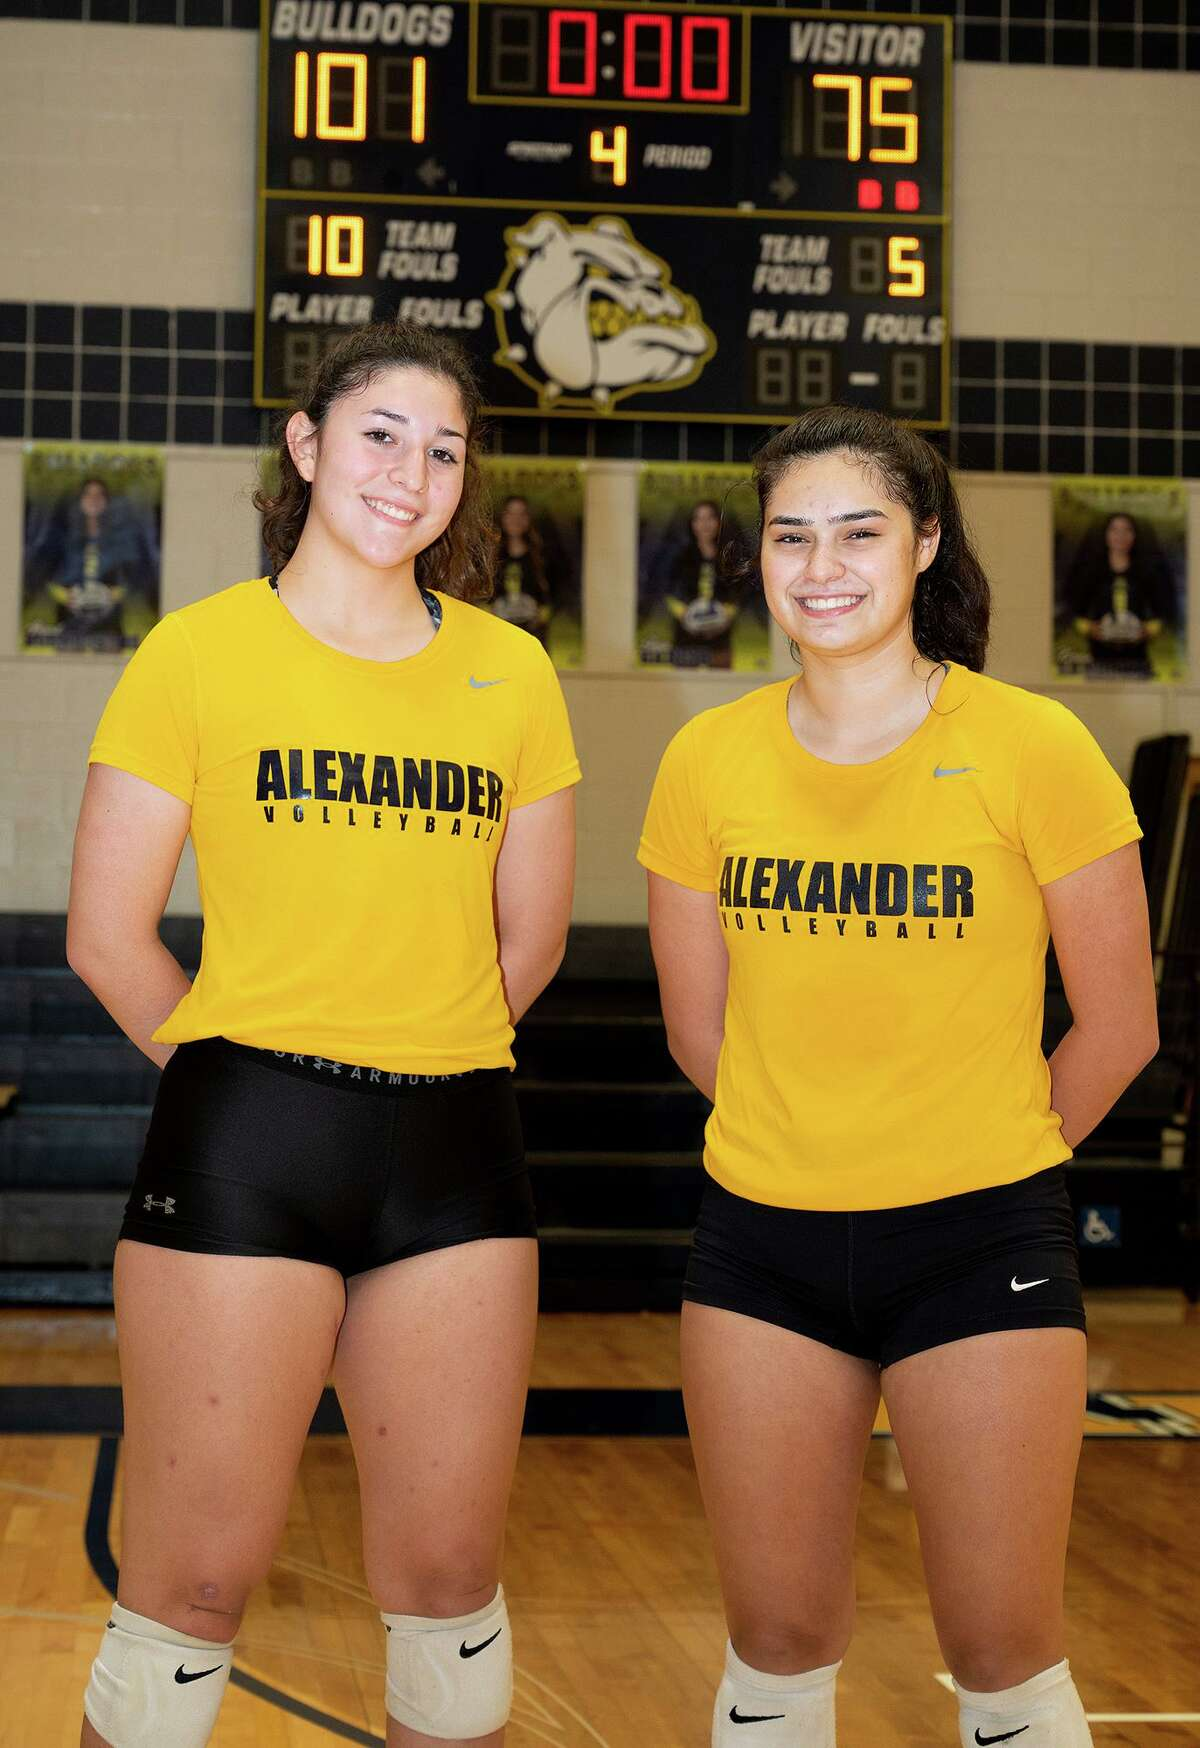 Victoria Guerrero and Valeria Ortiz gather for a feature photo Monday, Sept. 20, 2021 at Alexander High School.